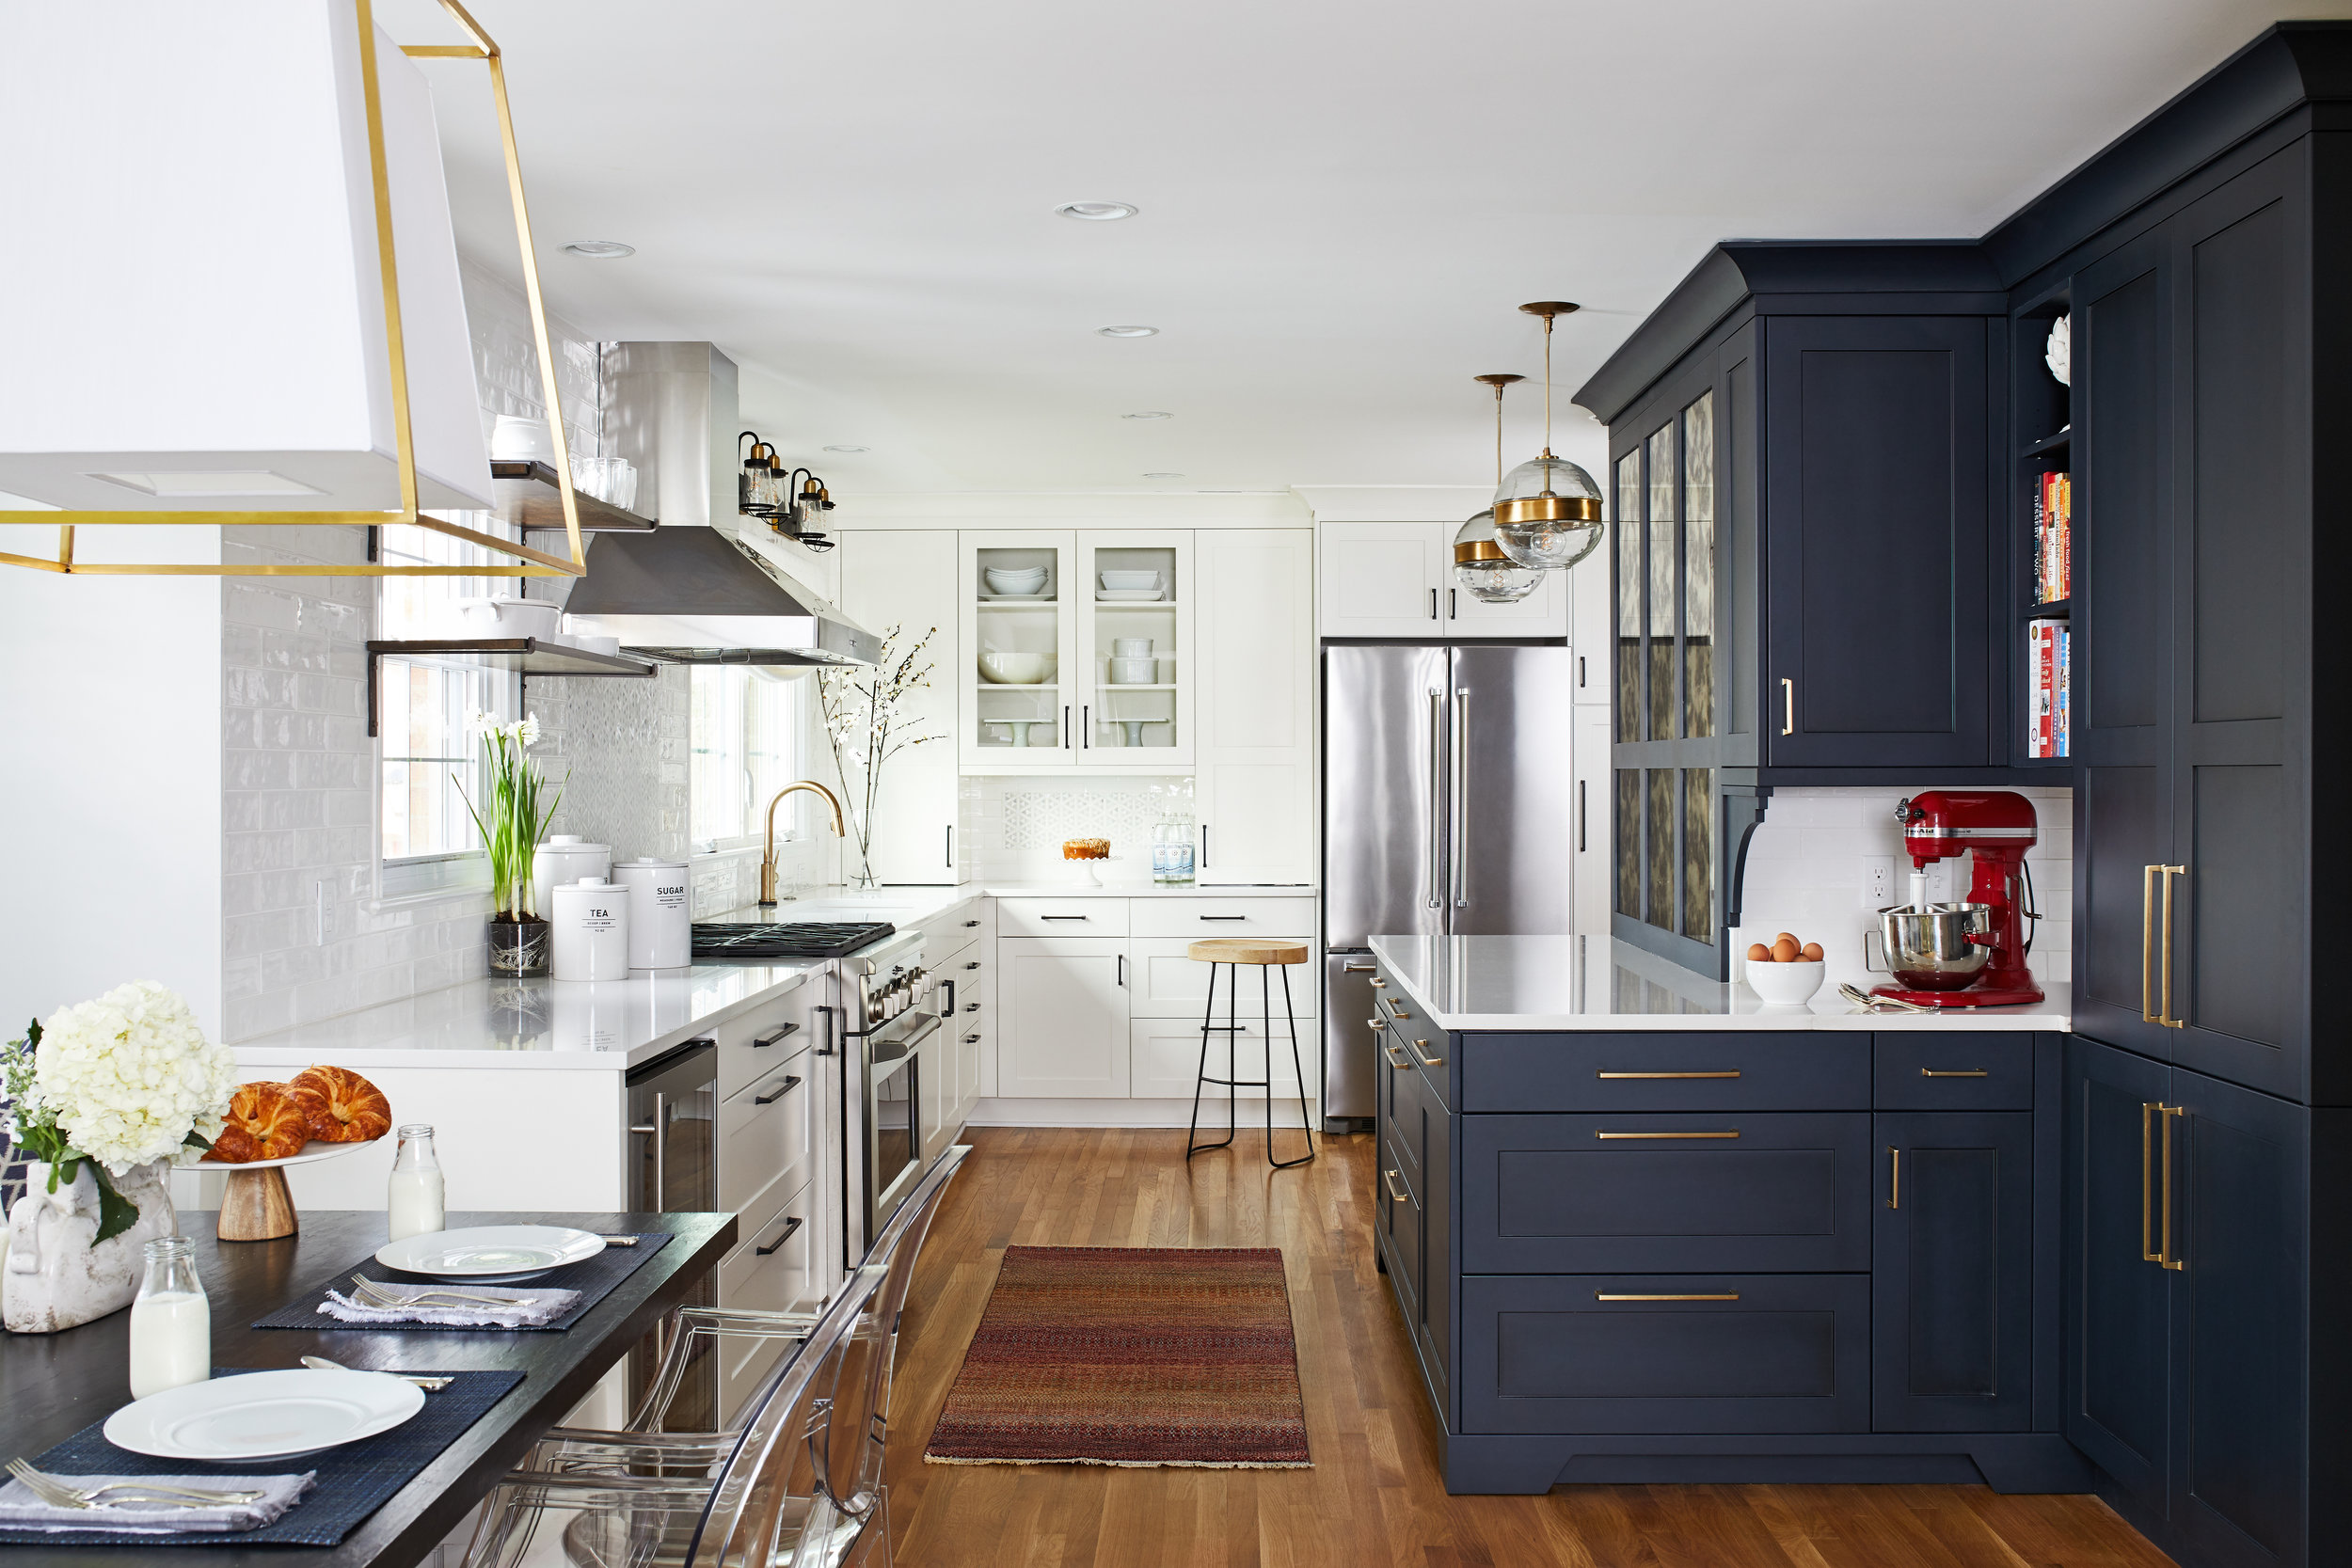 This client's highly organized Baker's Kitchen made it in to the Top Ten Kitchens of 2018 on Houzz, and we couldn't be more thrilled.